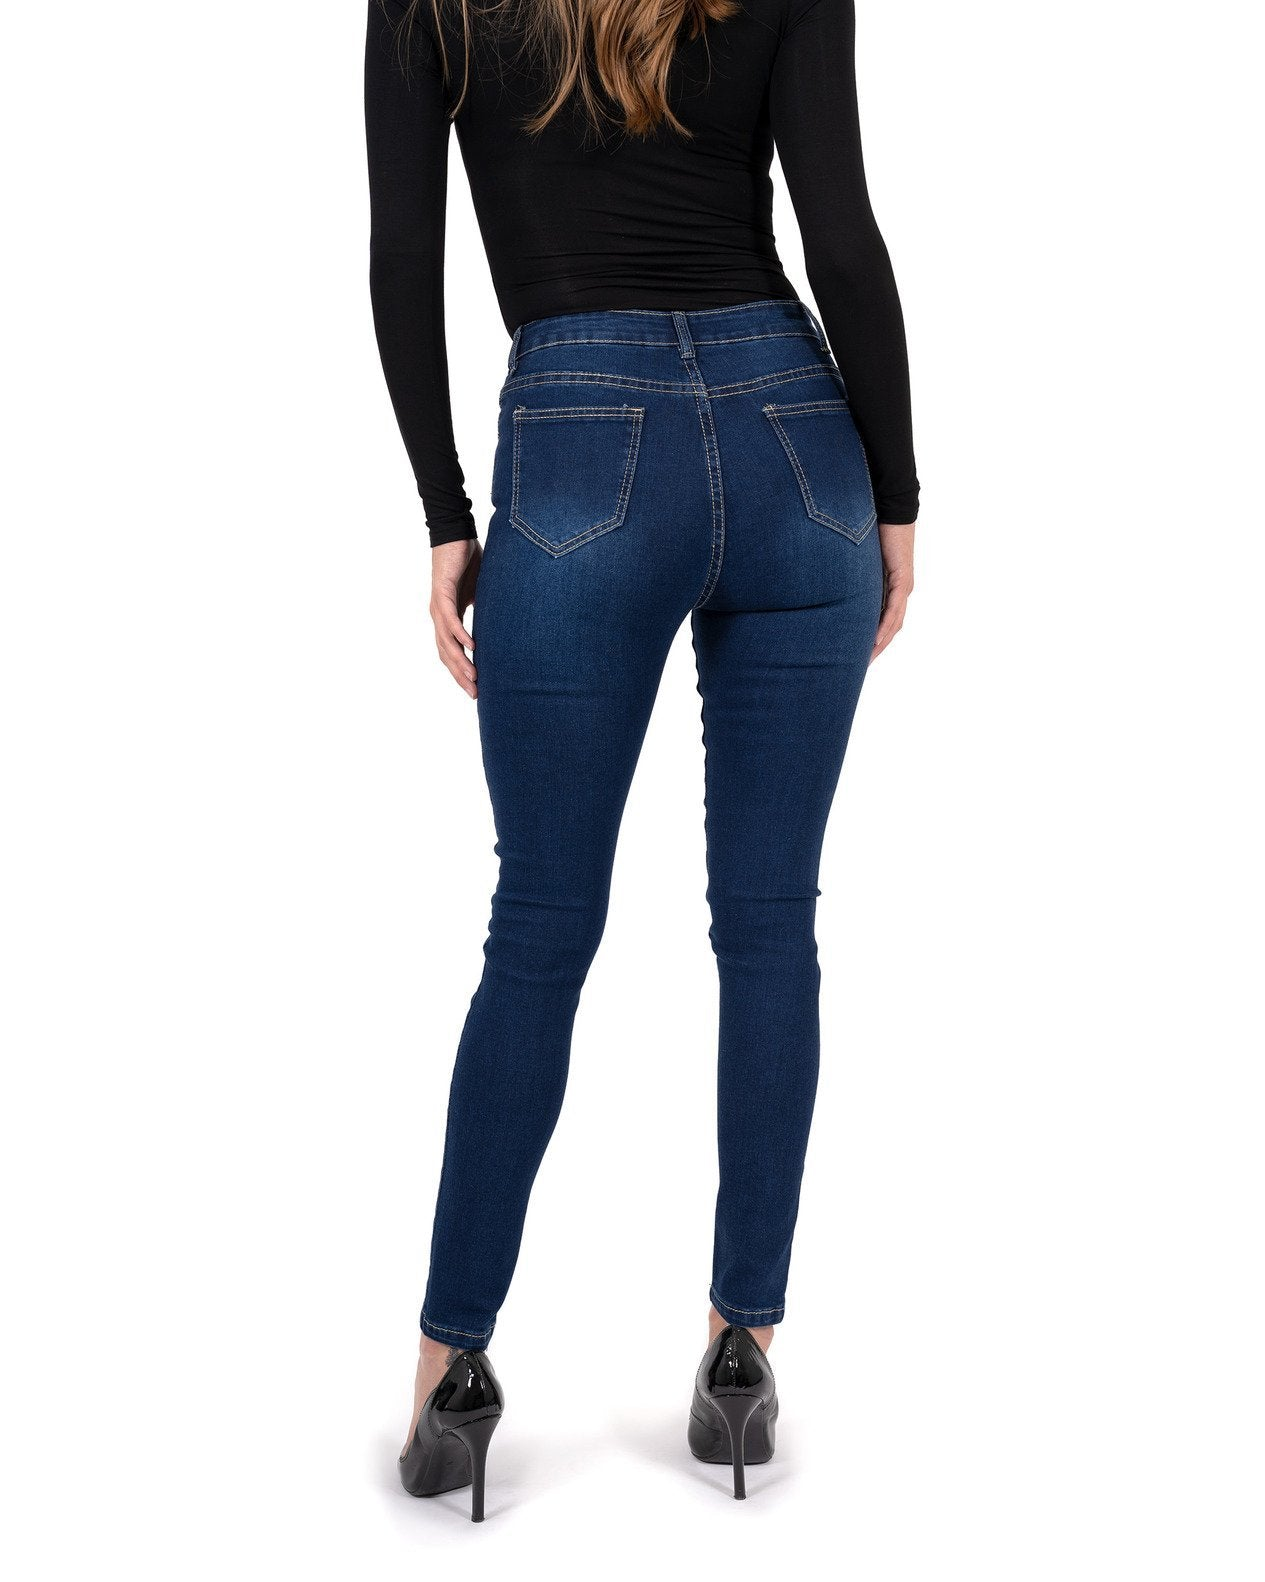 Alexis High Waisted Skinny Jeans - TRINQUETZ